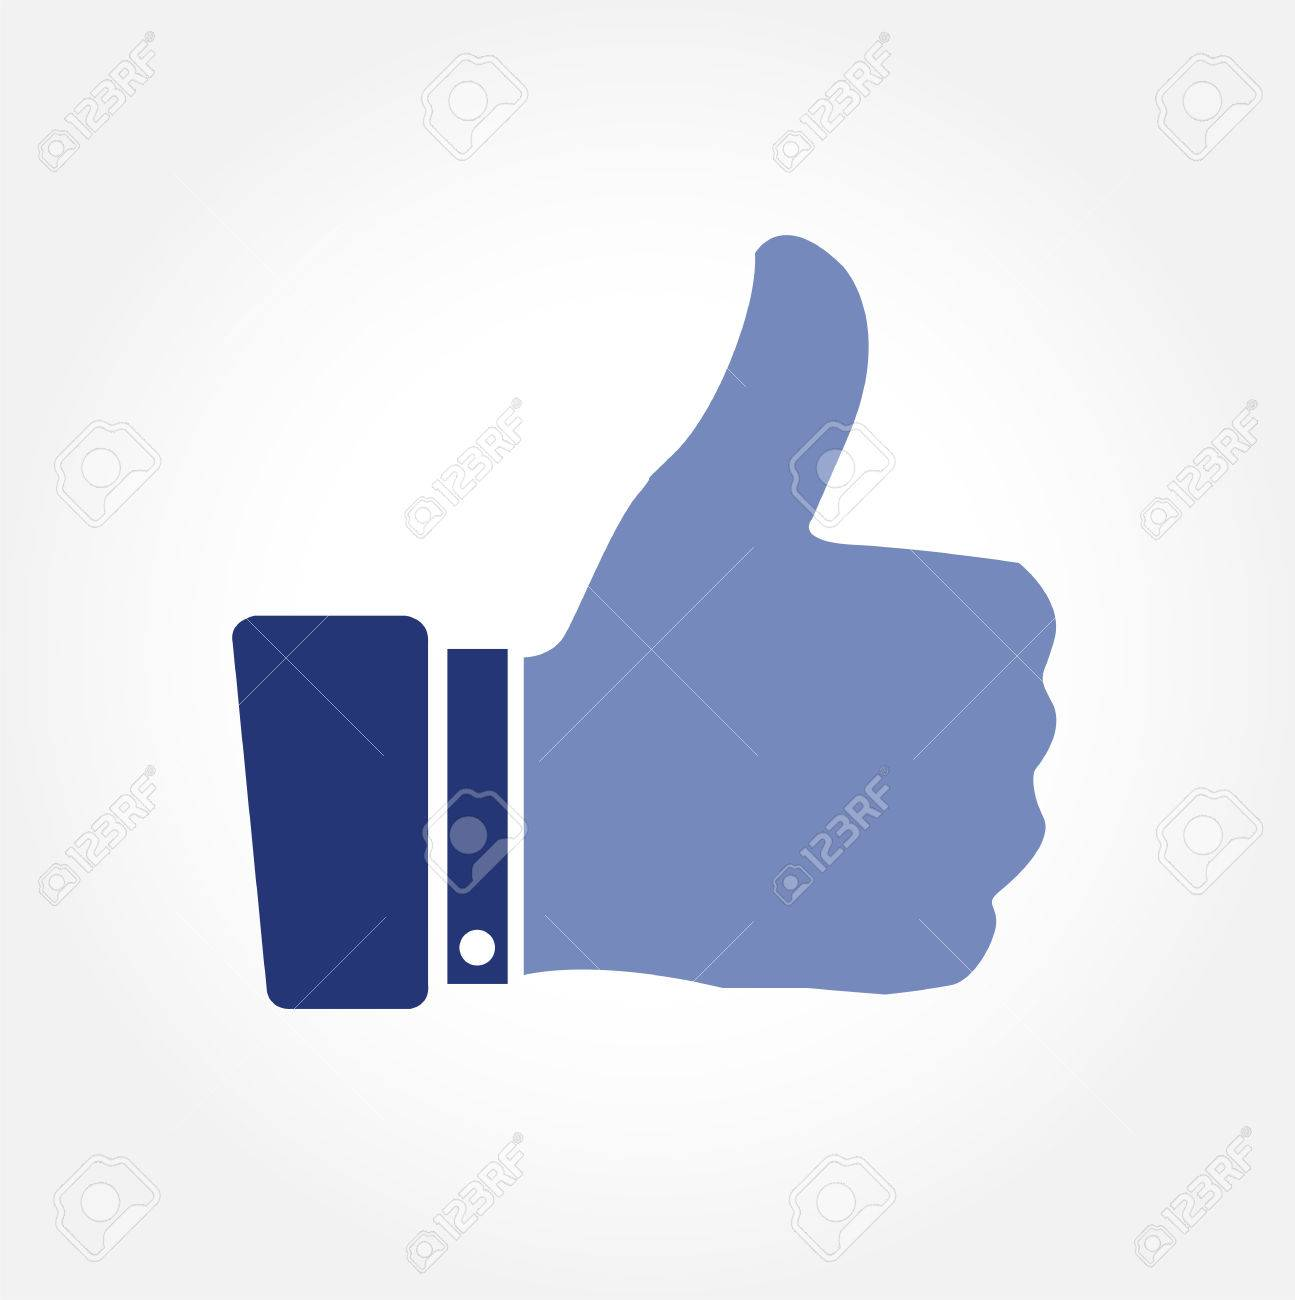 Blue thumbs up vector icon on white background Stock Vector - 22203631